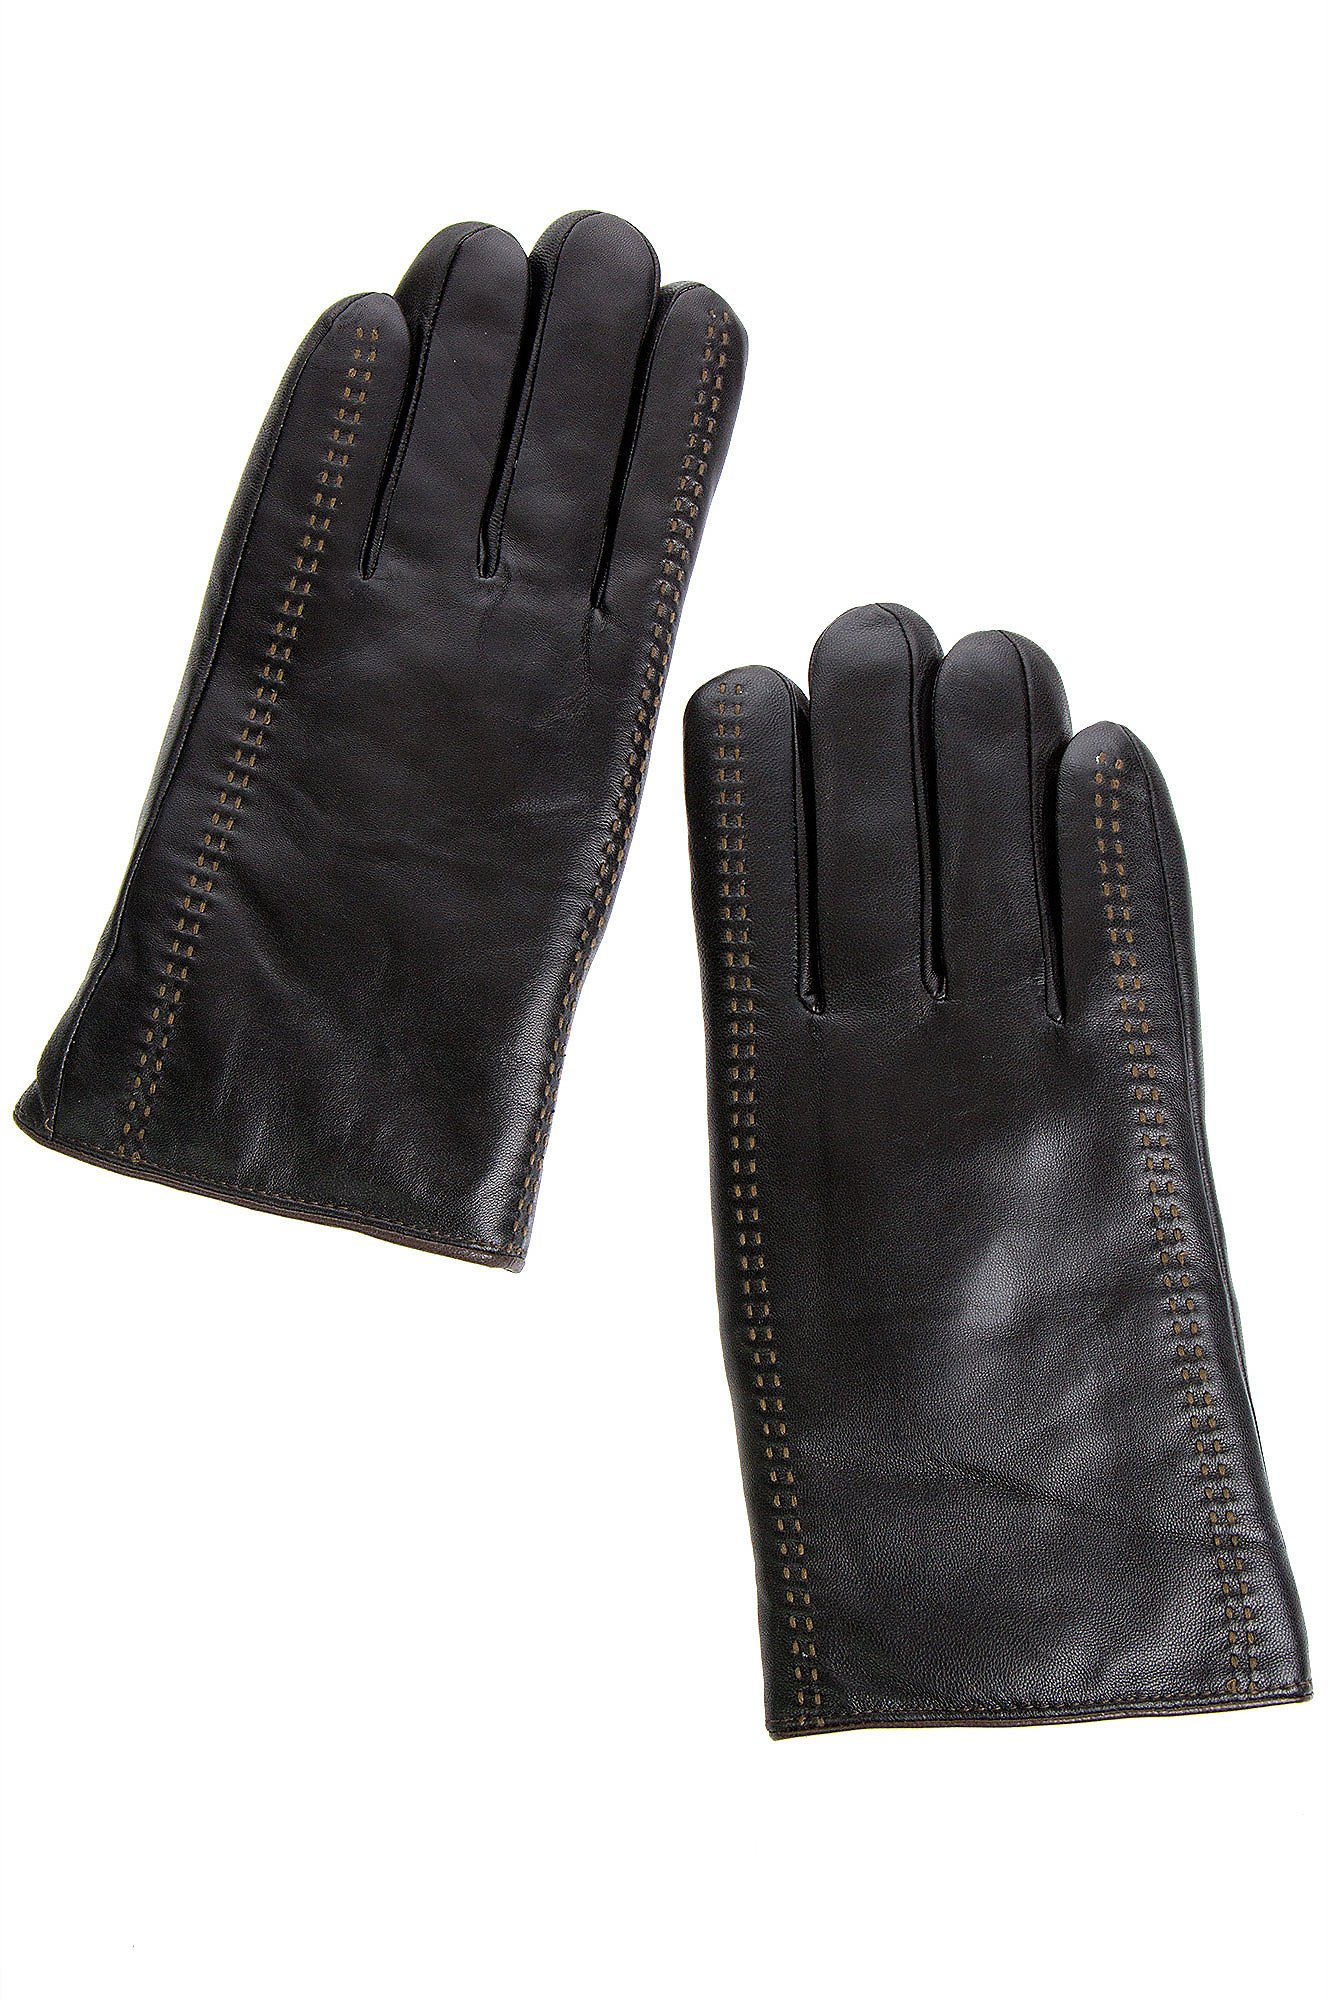 Men's Premium Lambskin Leather Gloves with Shearling Lining by Overland Sheepskin Co (Image #1)